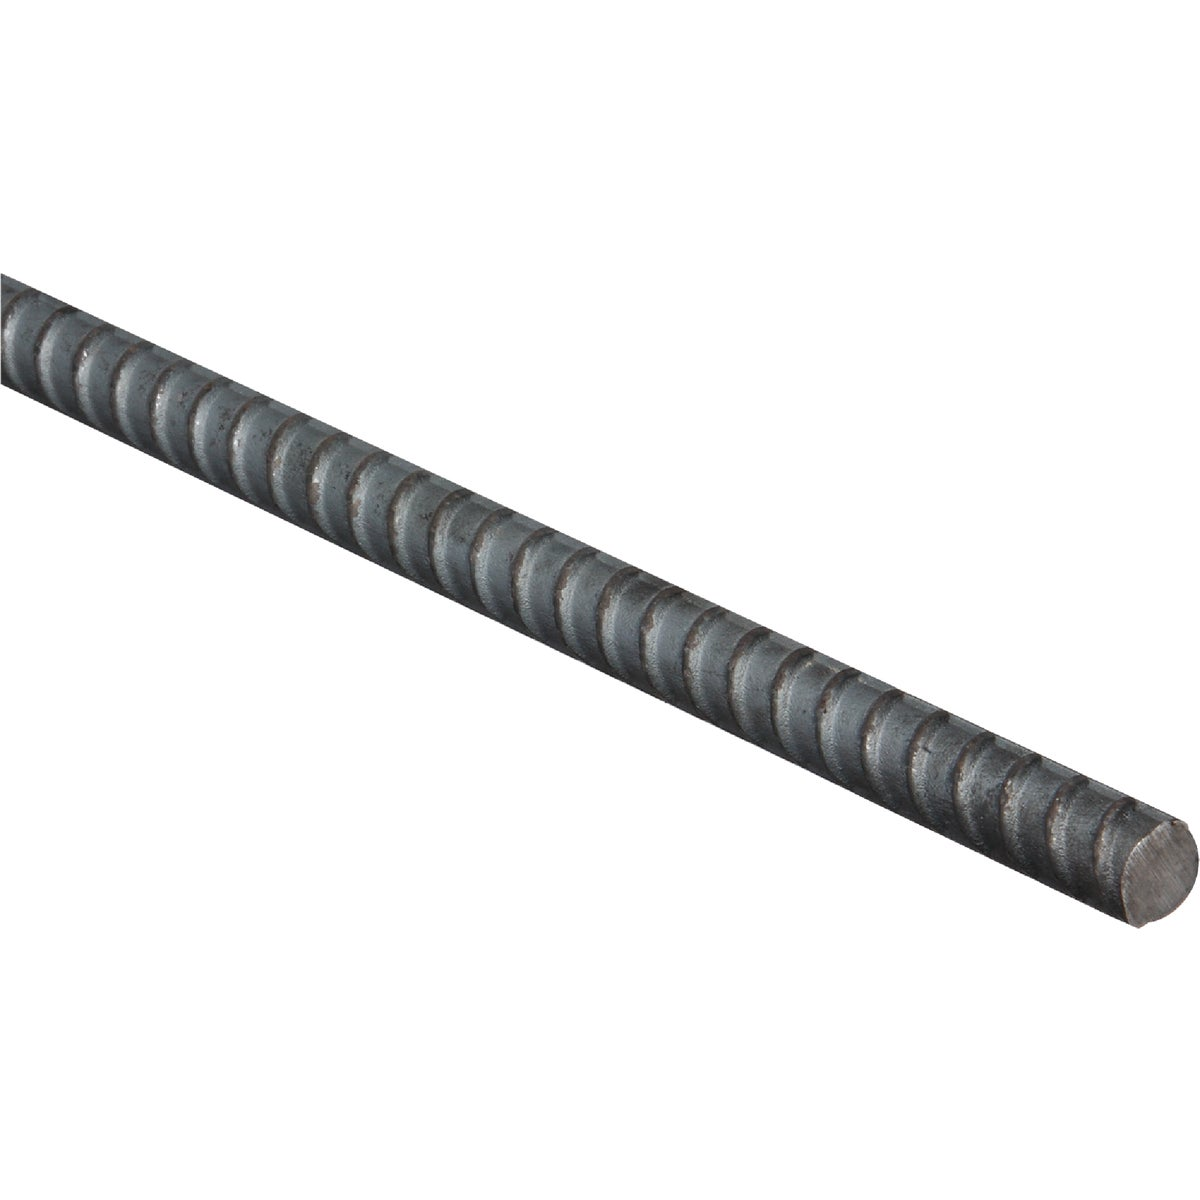 "1/2""X3' #4 REBAR - 1236RBP by Primesource"